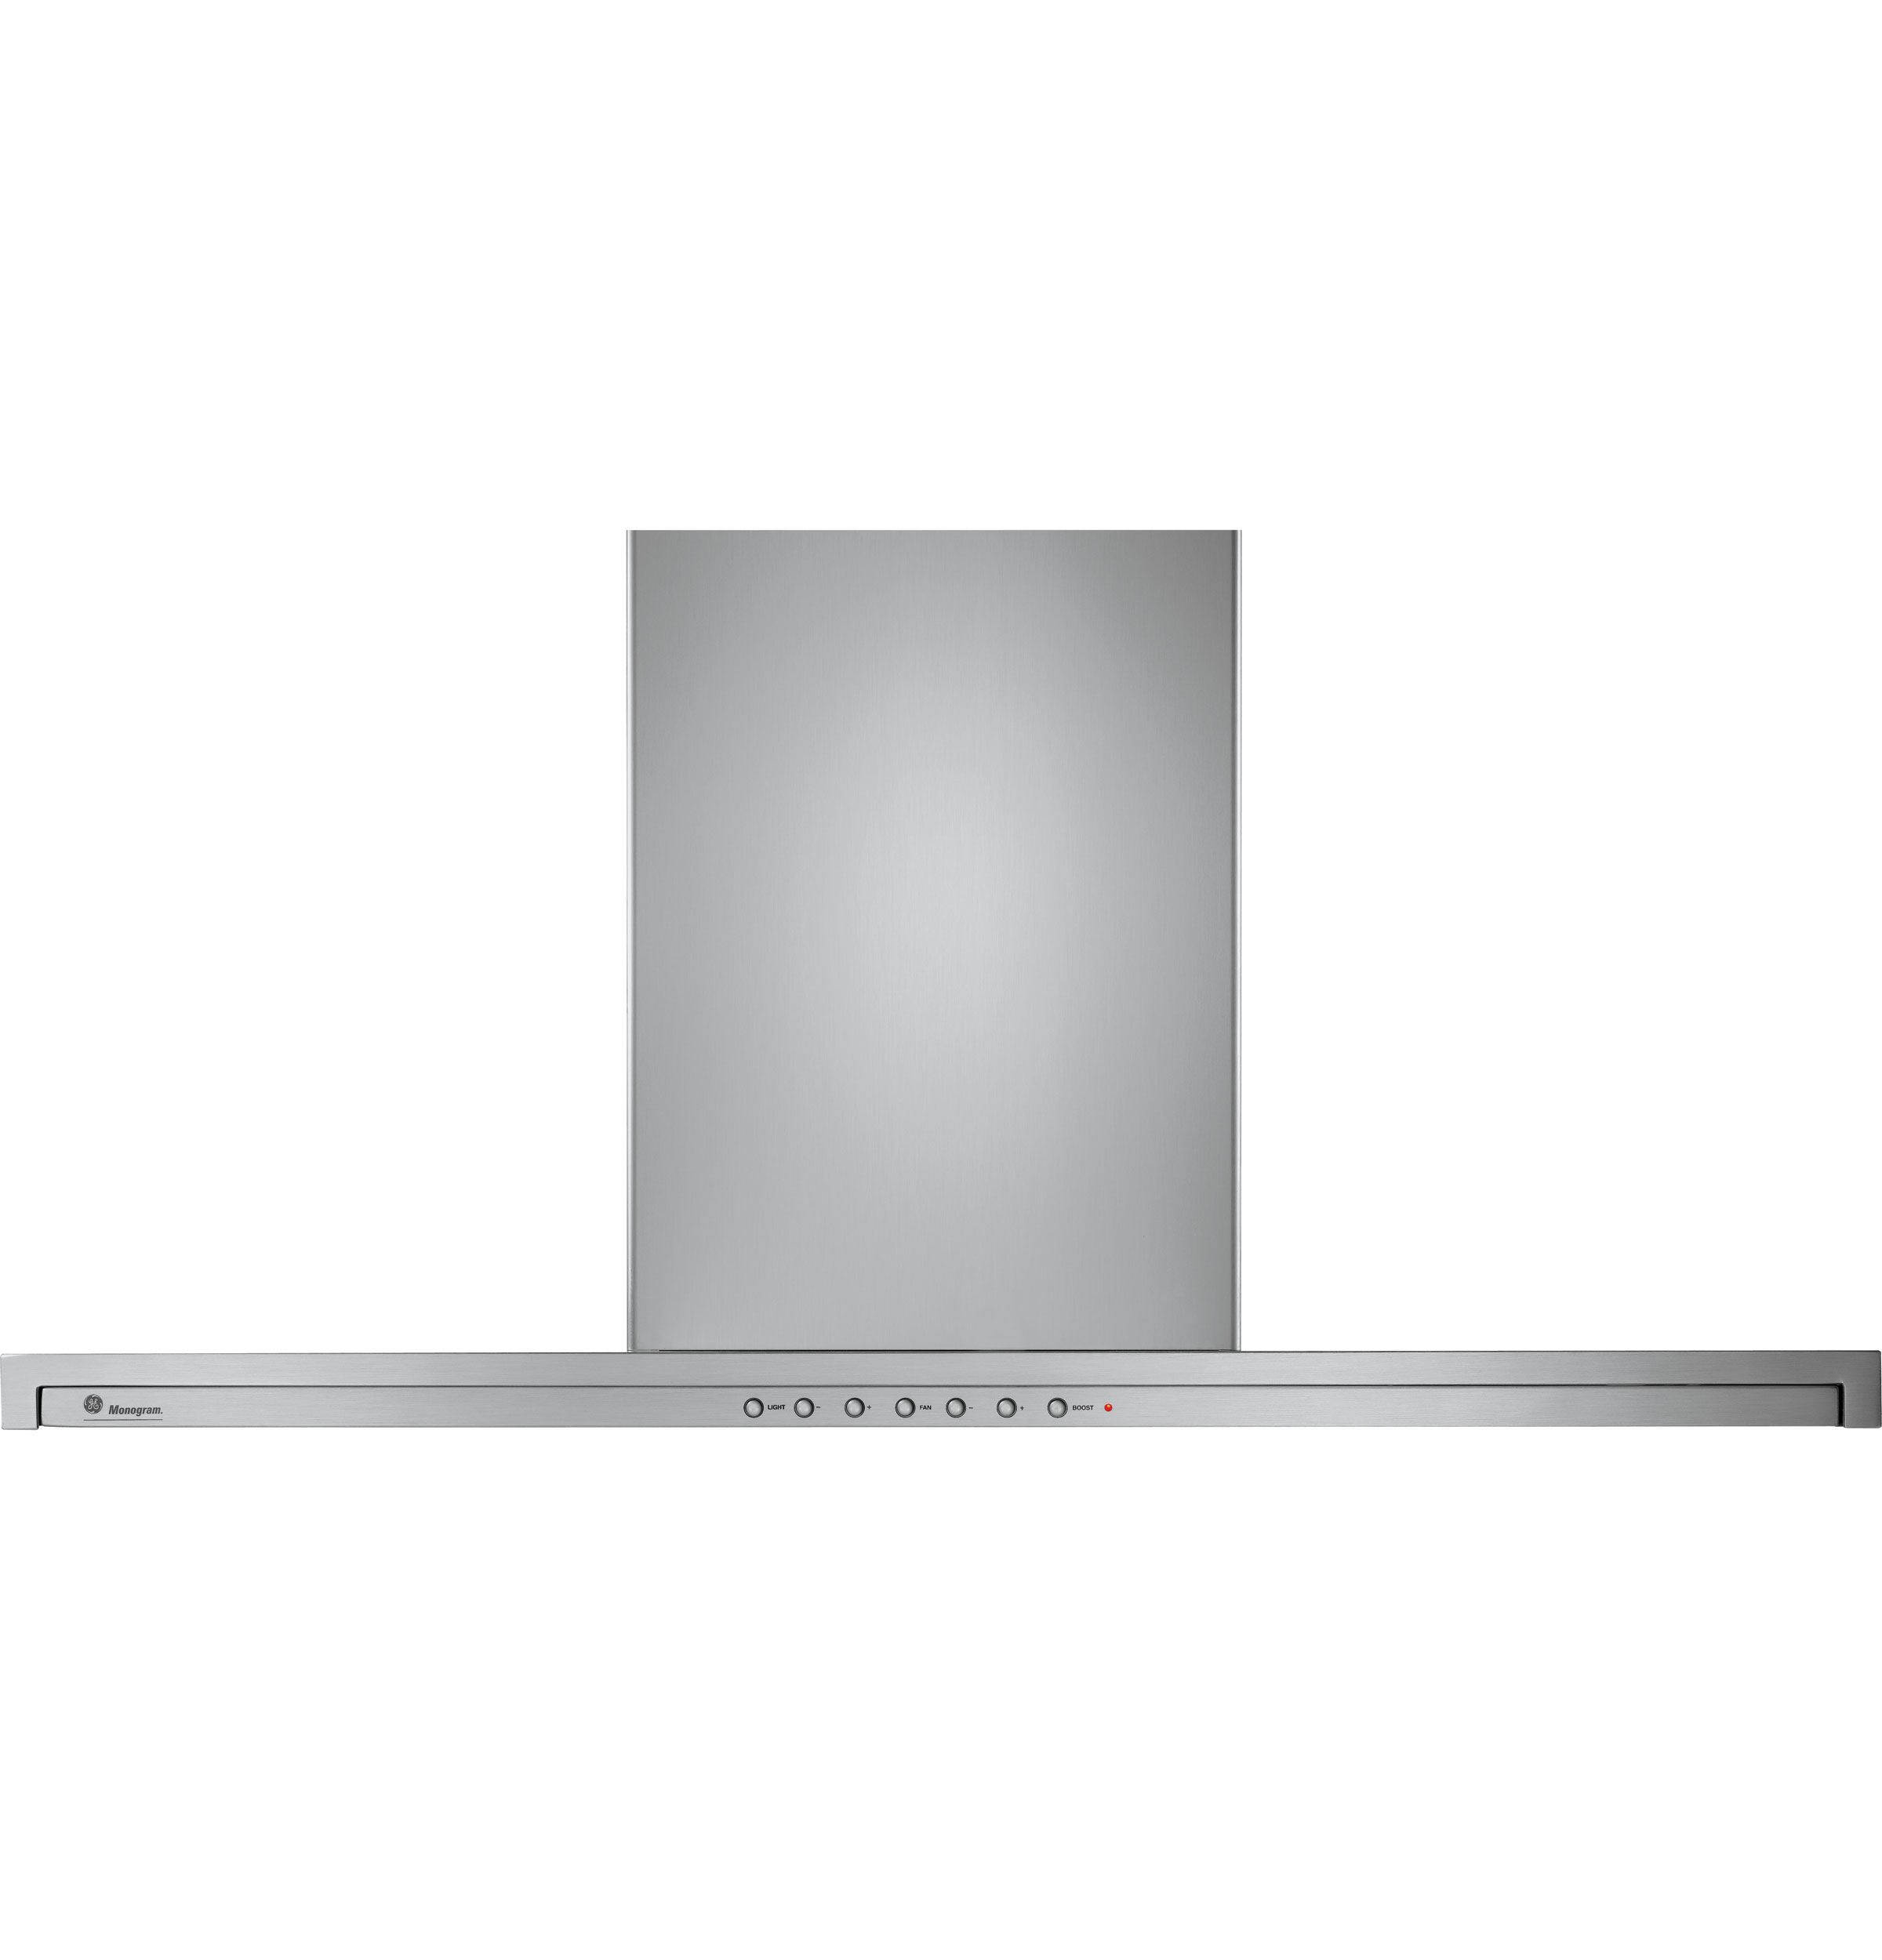 Cabinets Will Cover All But Thin Horizontal Part Zv800sjss 36 S Lighted Bathroom Mirror Steel Wall Kitchen Styling